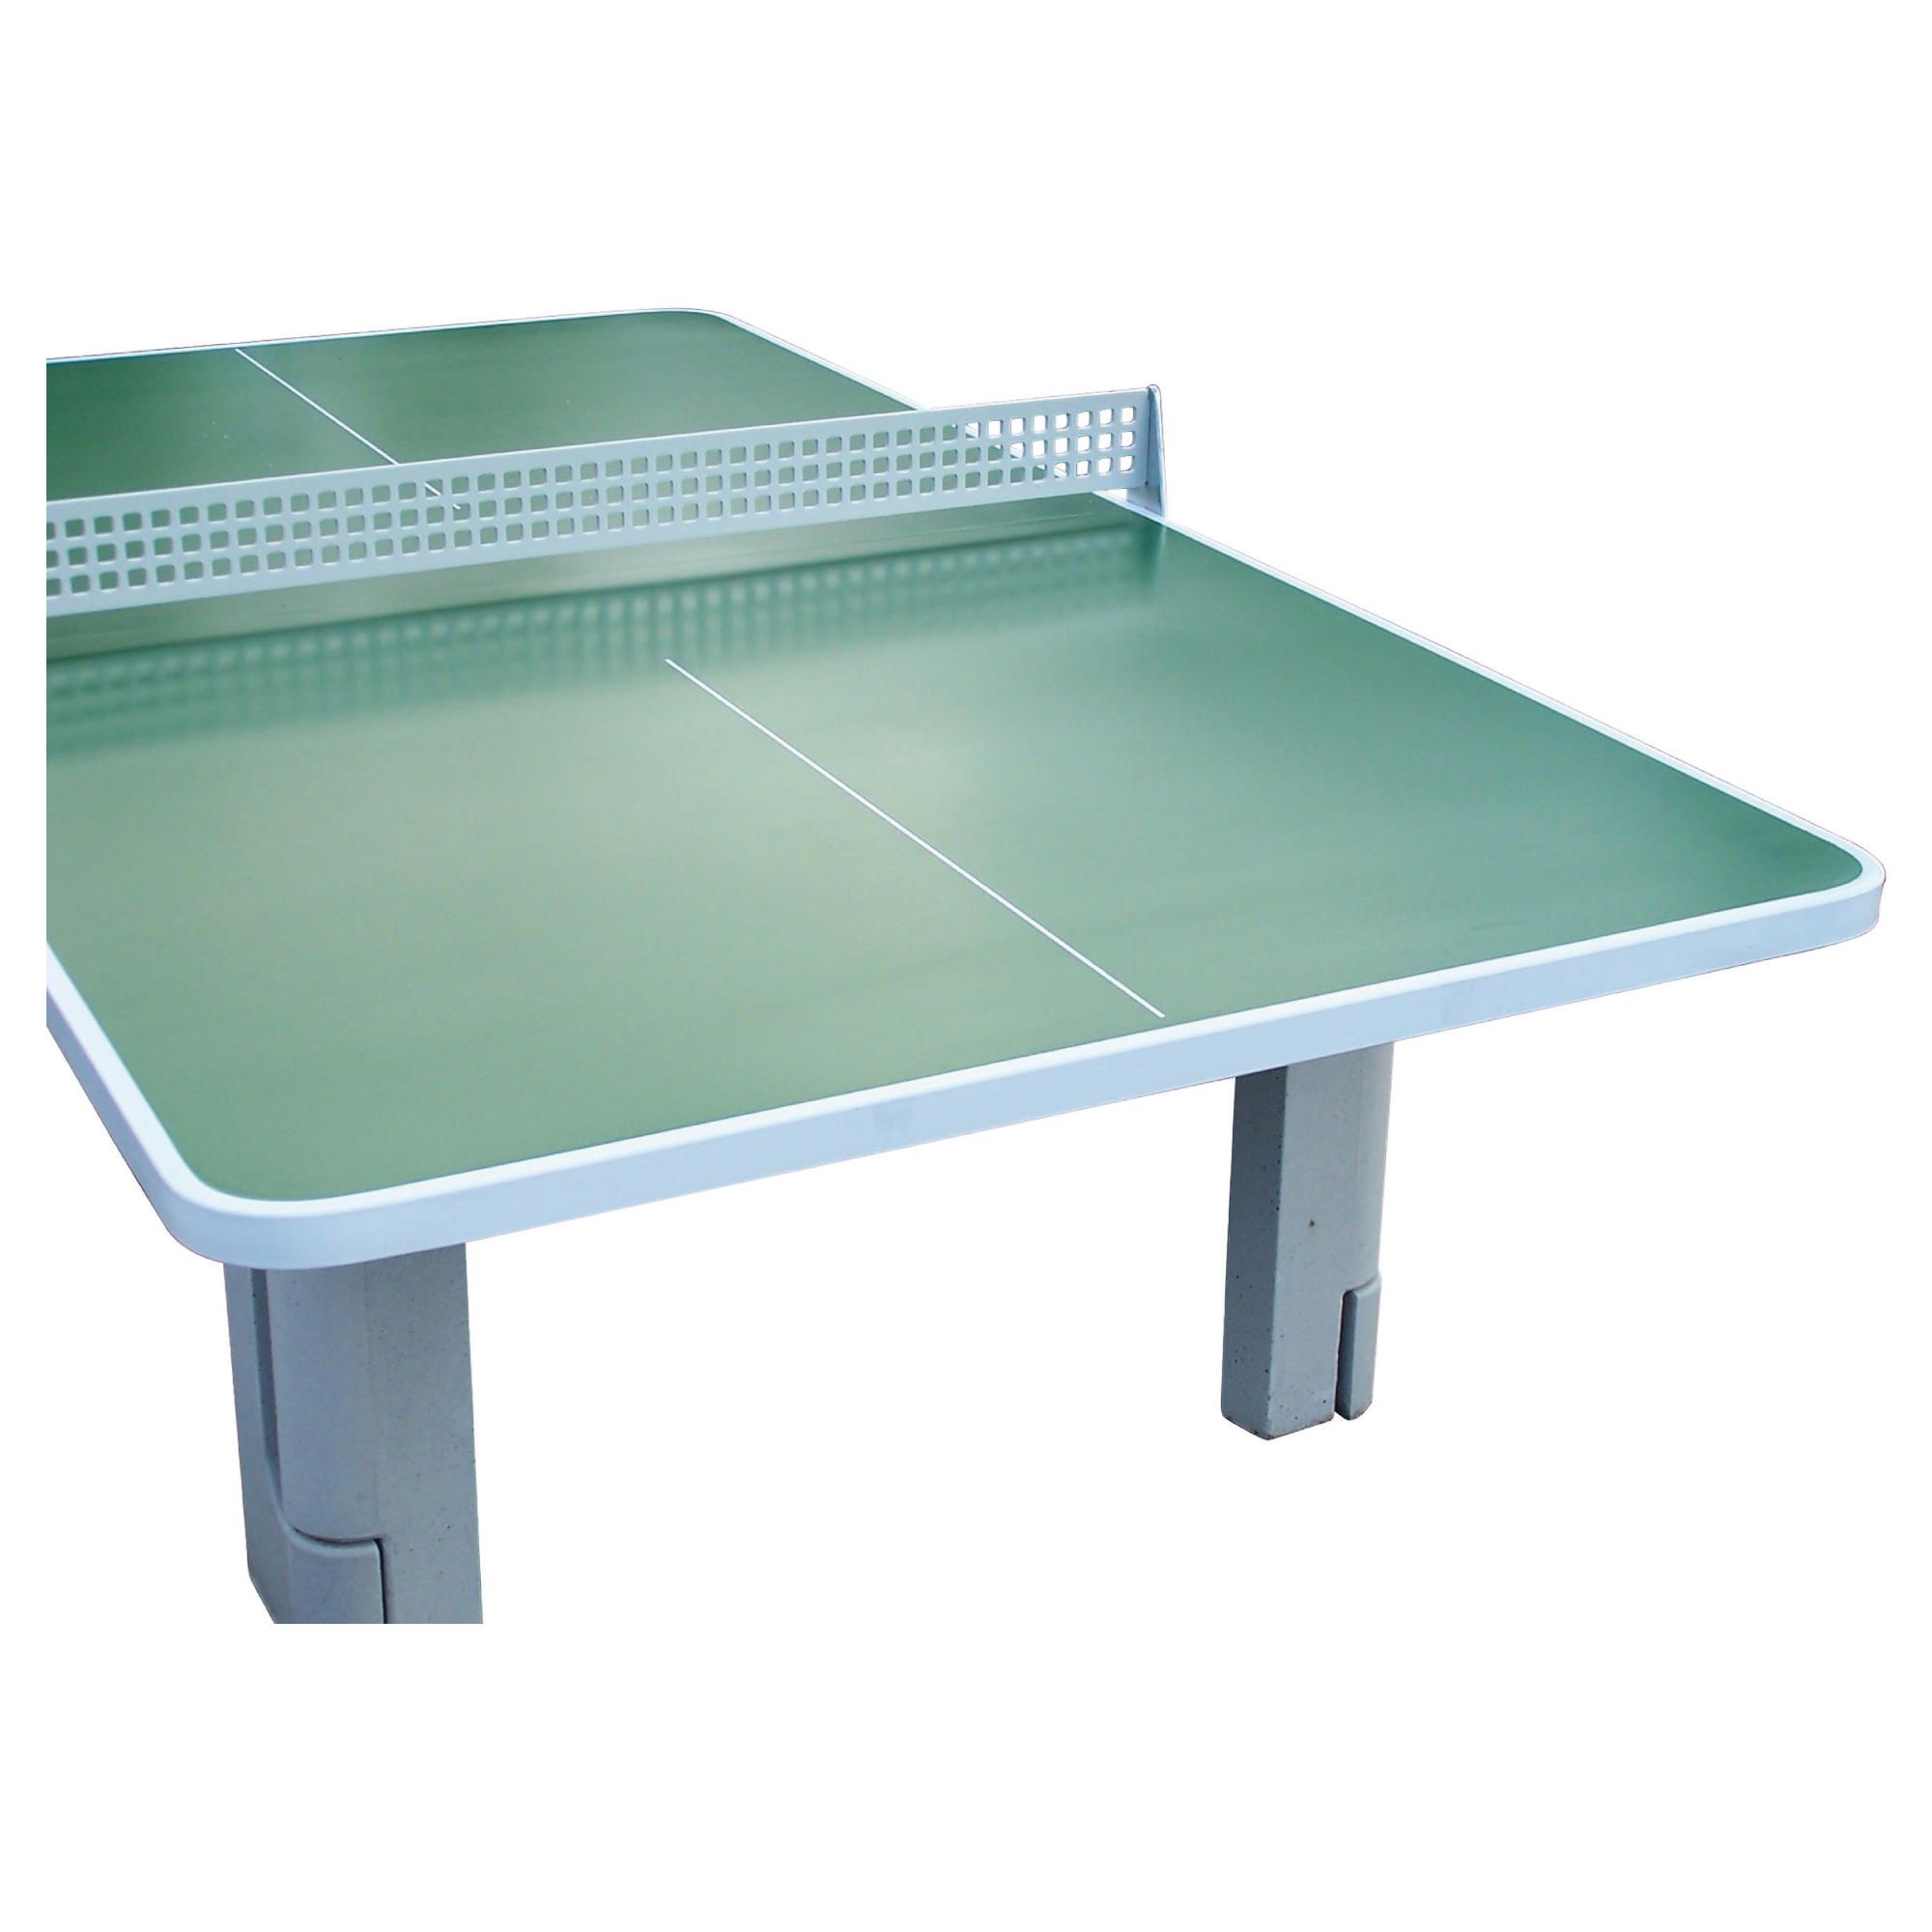 Butterfly B2000 Standard Concrete Table Tennis Table at Tesco Direct